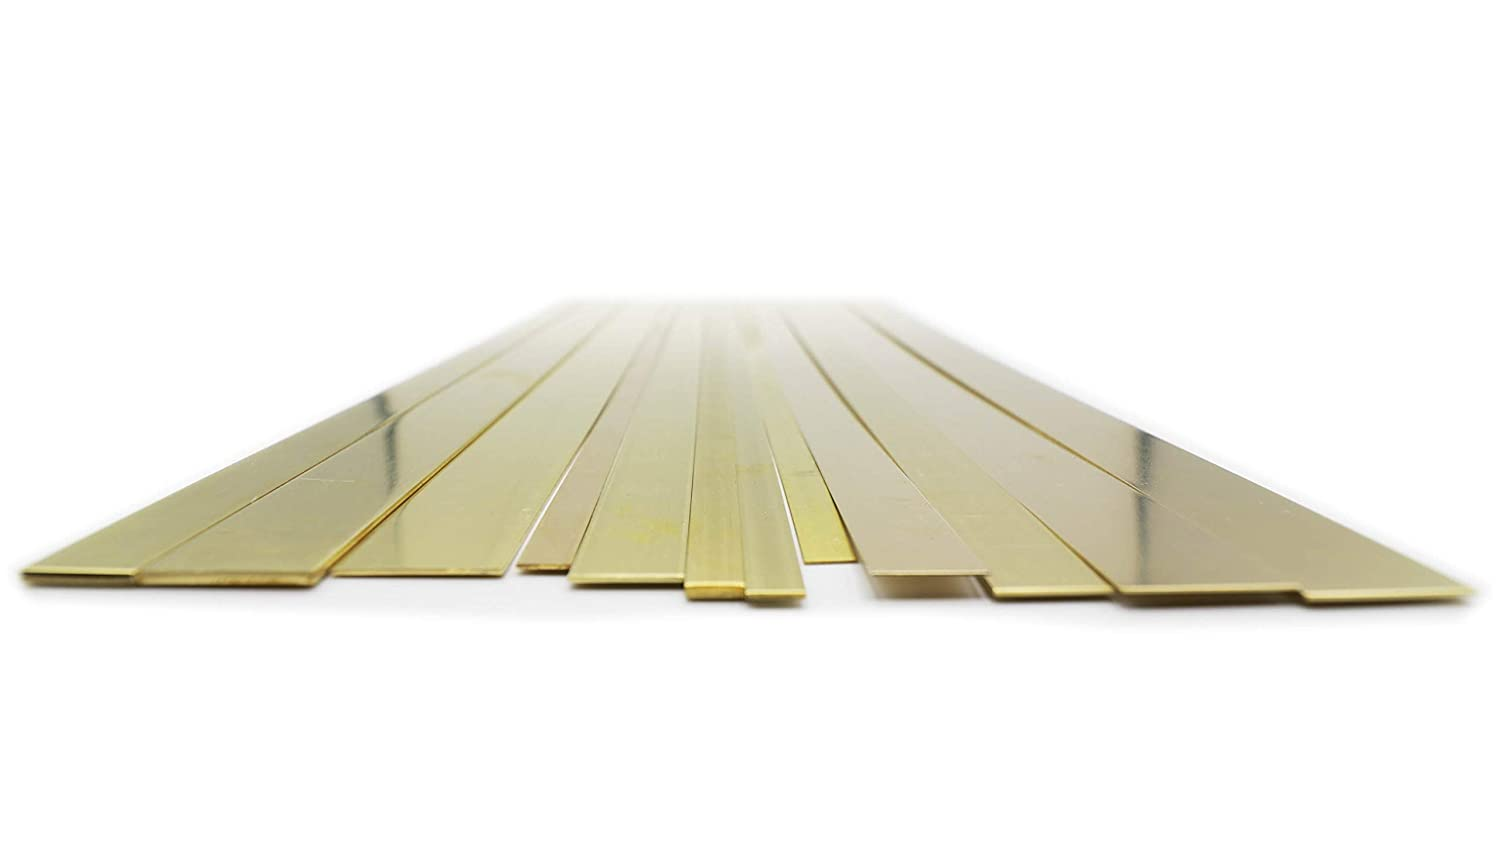 1//2 Made in The USA 3//4 Wide 12 Pieces per Pack K /& S Precision Metals 3407 Brass Strip.016 // .025 // .032 // .064 Thick Contains: 1//4